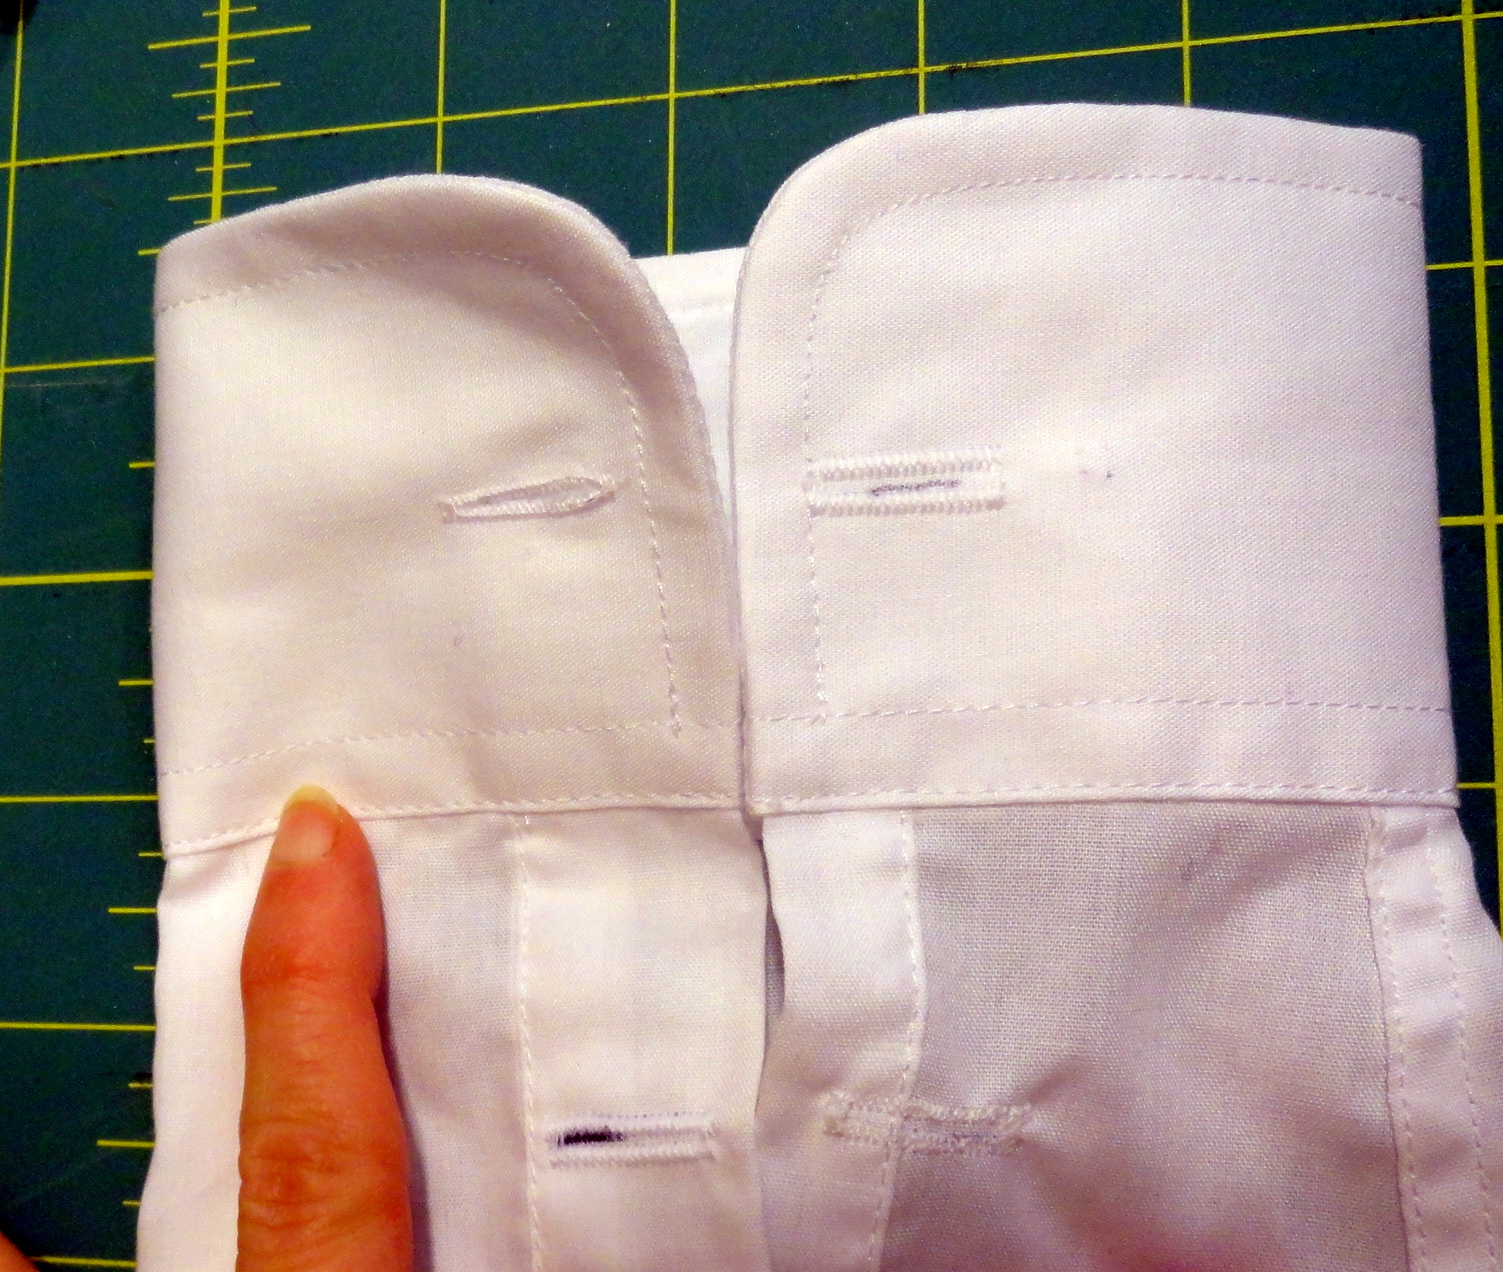 ac78ee0384c8b5 How to make a standard shirt cuff link ready | <datFeata:blog.title ...